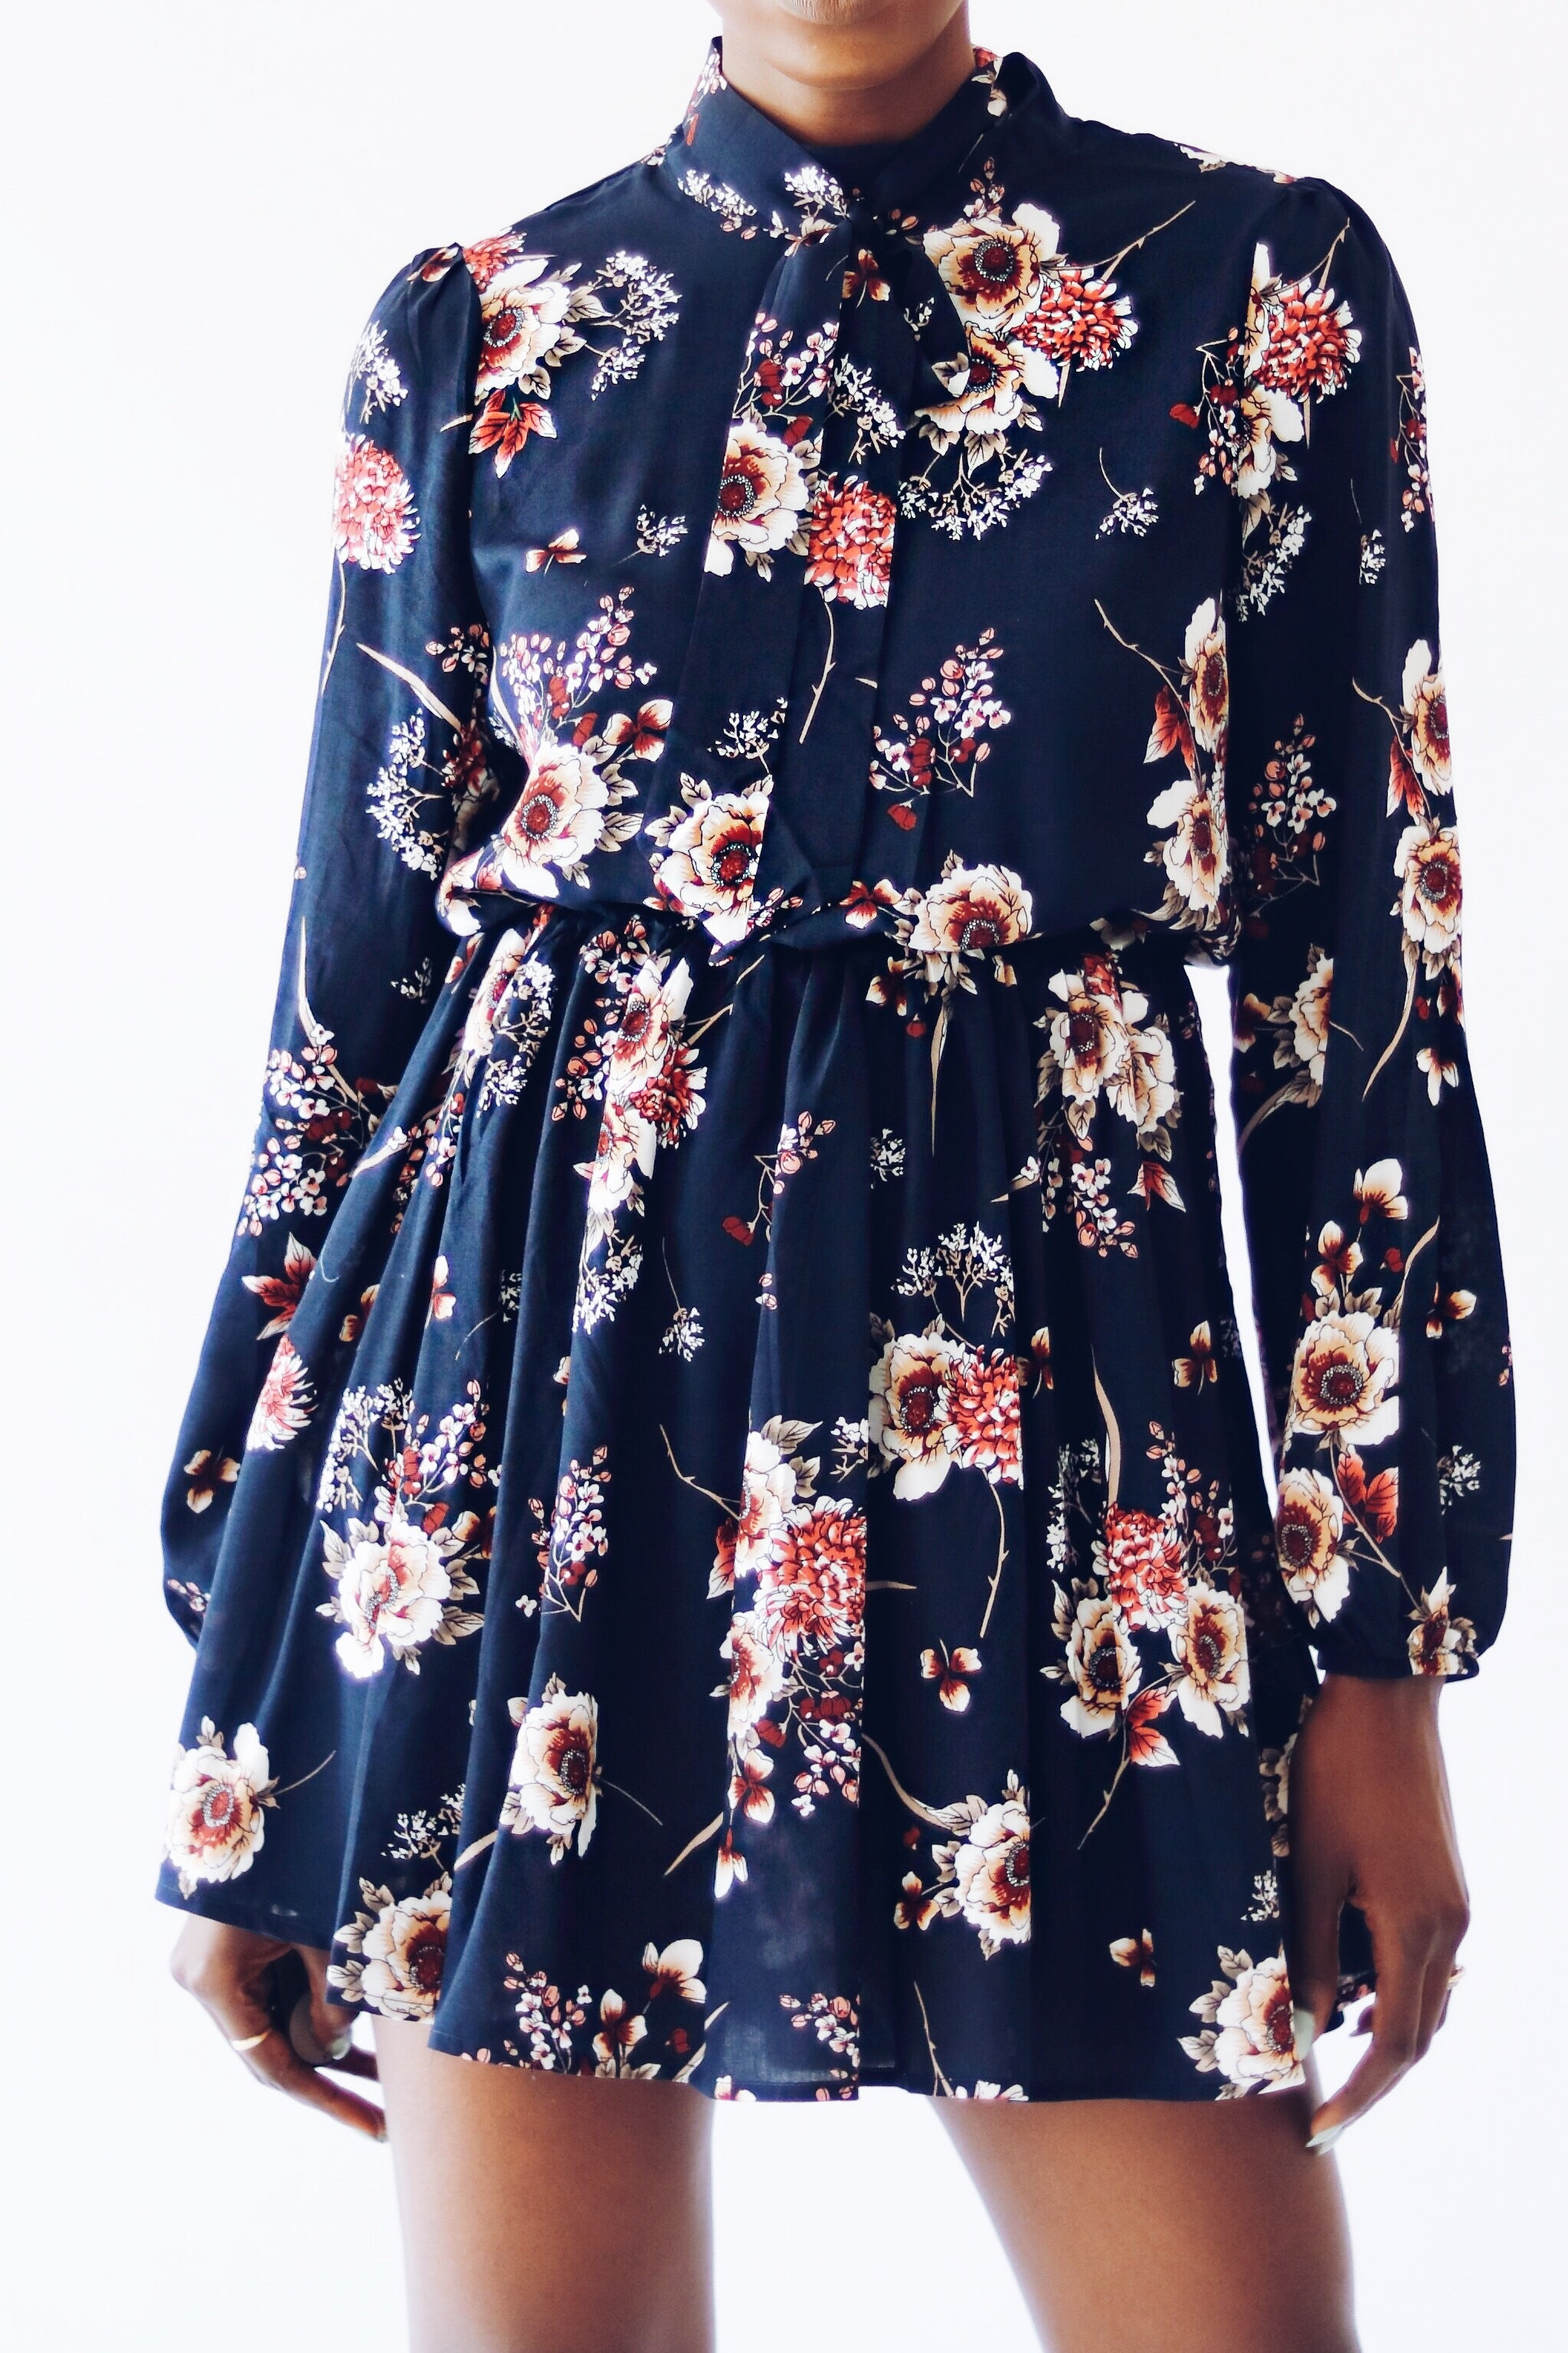 aab51653cc93 Blue Long Sleeve Floral Dress – All She Needs